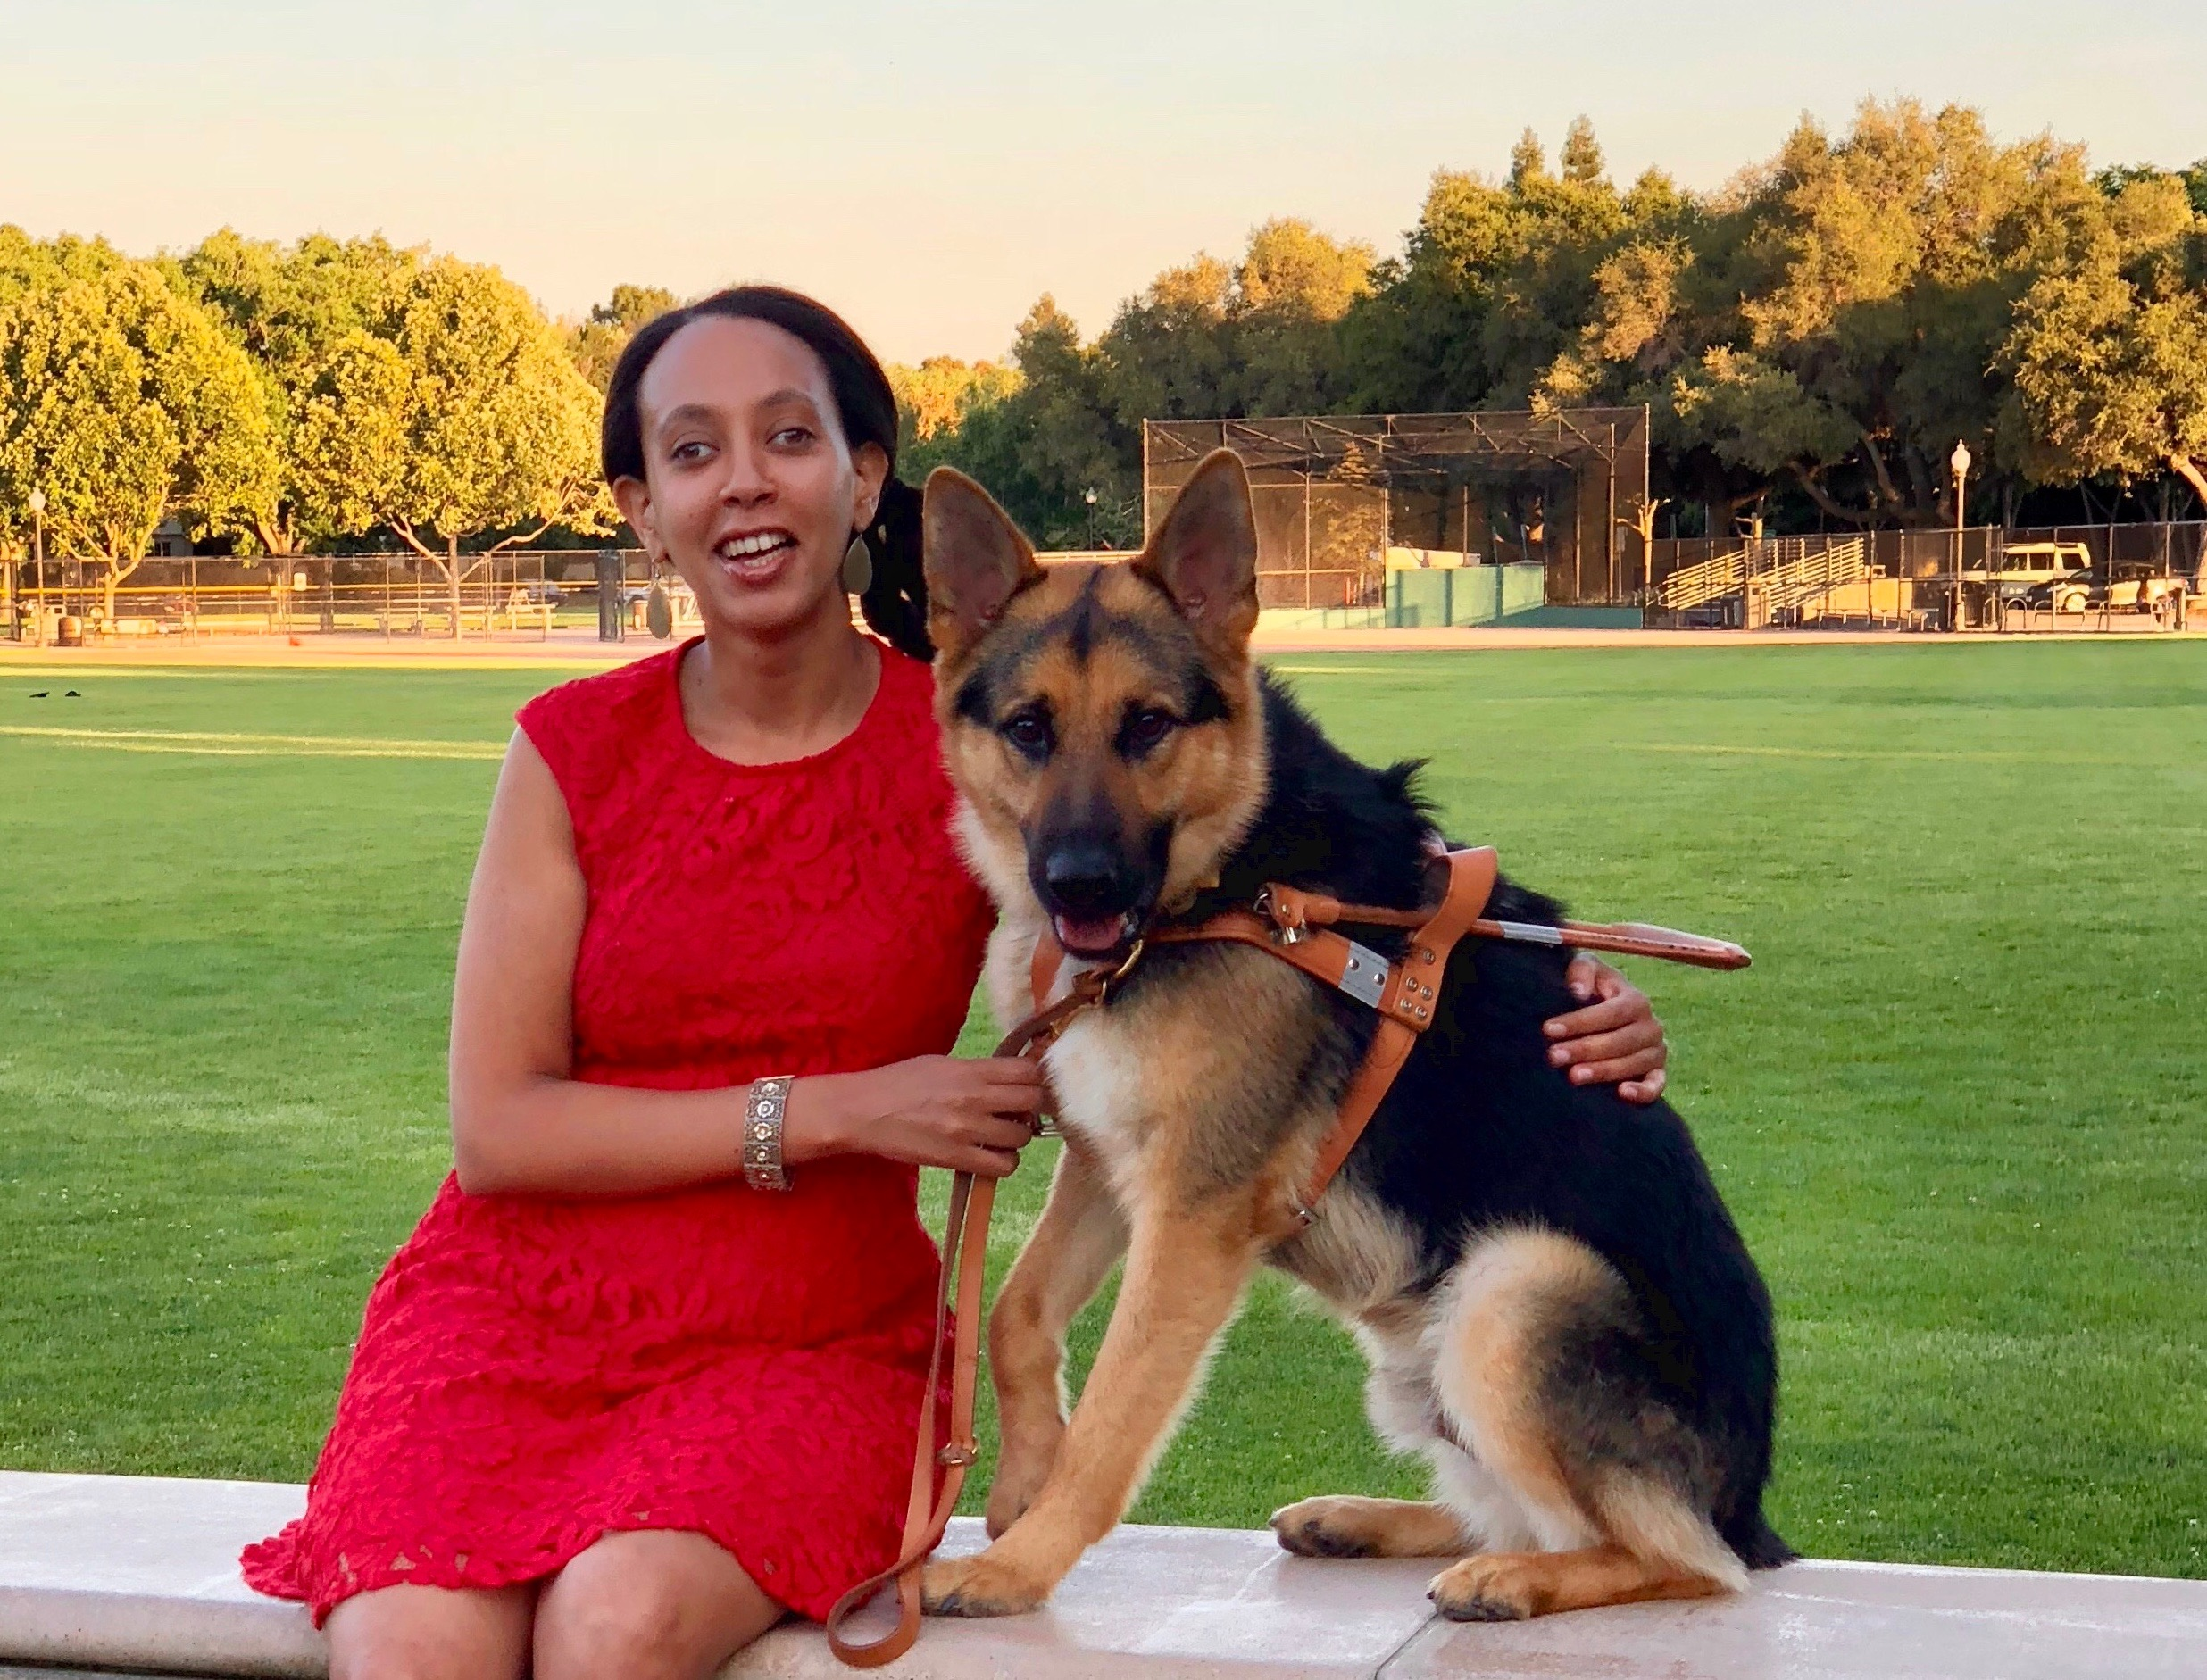 Haben and Mylo are sitting on a bench. Mylo is a black and tan medium-sized German Shepherd dog. He's wearing a leather harness, and Haben is holding his leash. Behind them is a large grassy field with trees in the distance